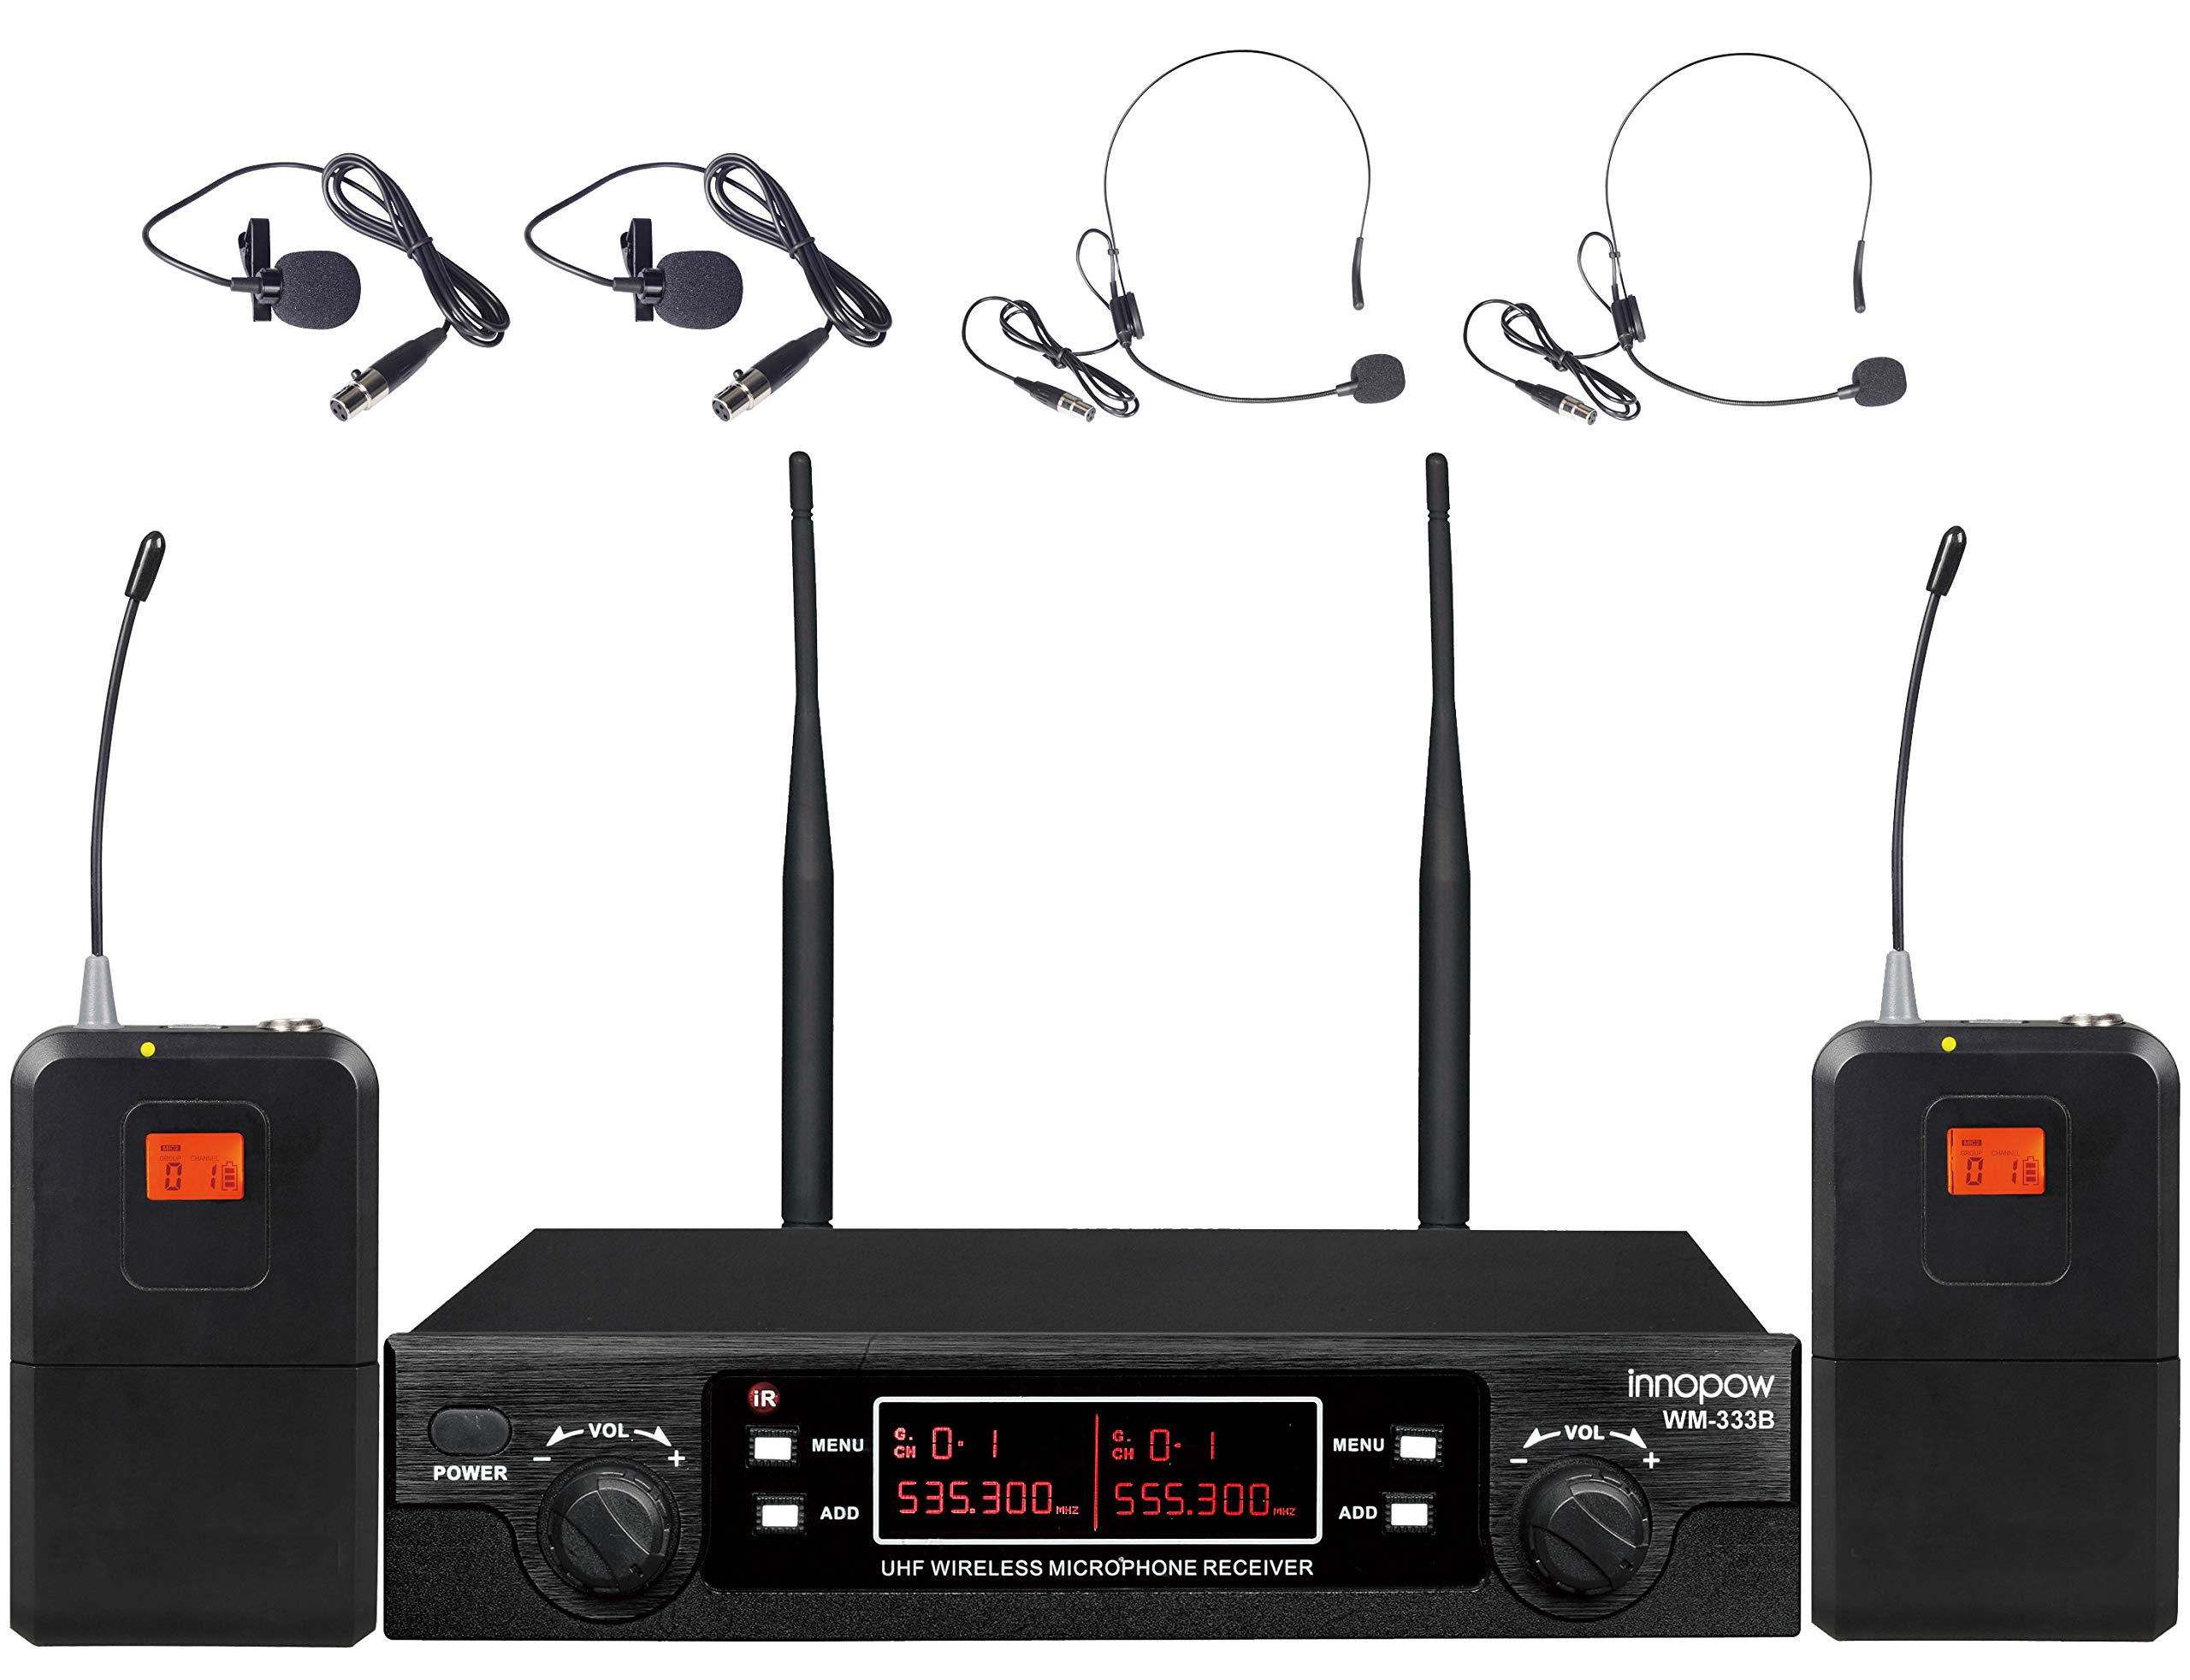 innopow 80-Channel Dual UHF Wireless Microphone System,inp Cordless mic Set, 2 Headset& 2 Lapel Lavalier Microphone, Long Distance 200-240Ft Prevent Interference,16 Hours Use for Church, Weddings by INNOPOW